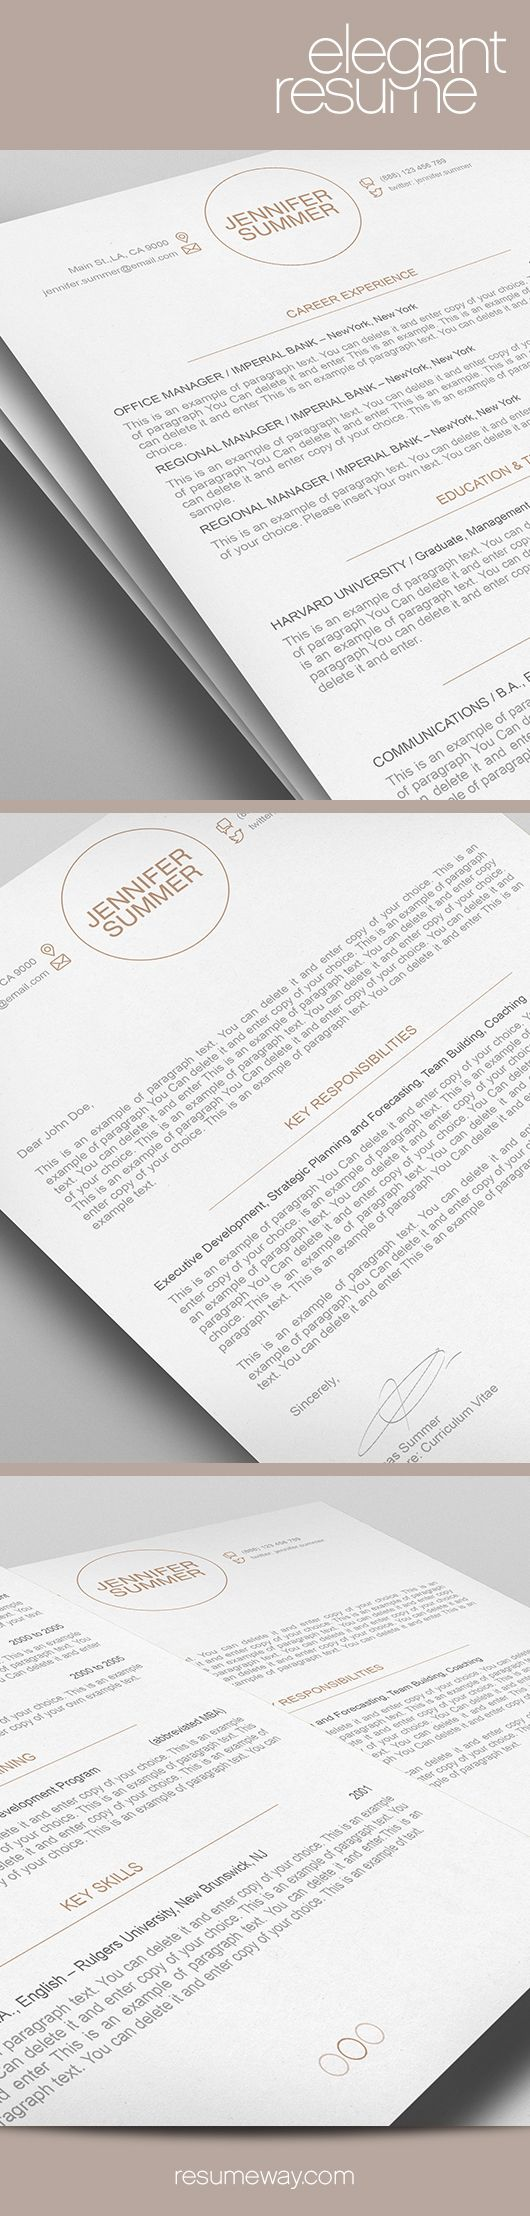 resume  resume templates and resume cover letters on pinterest